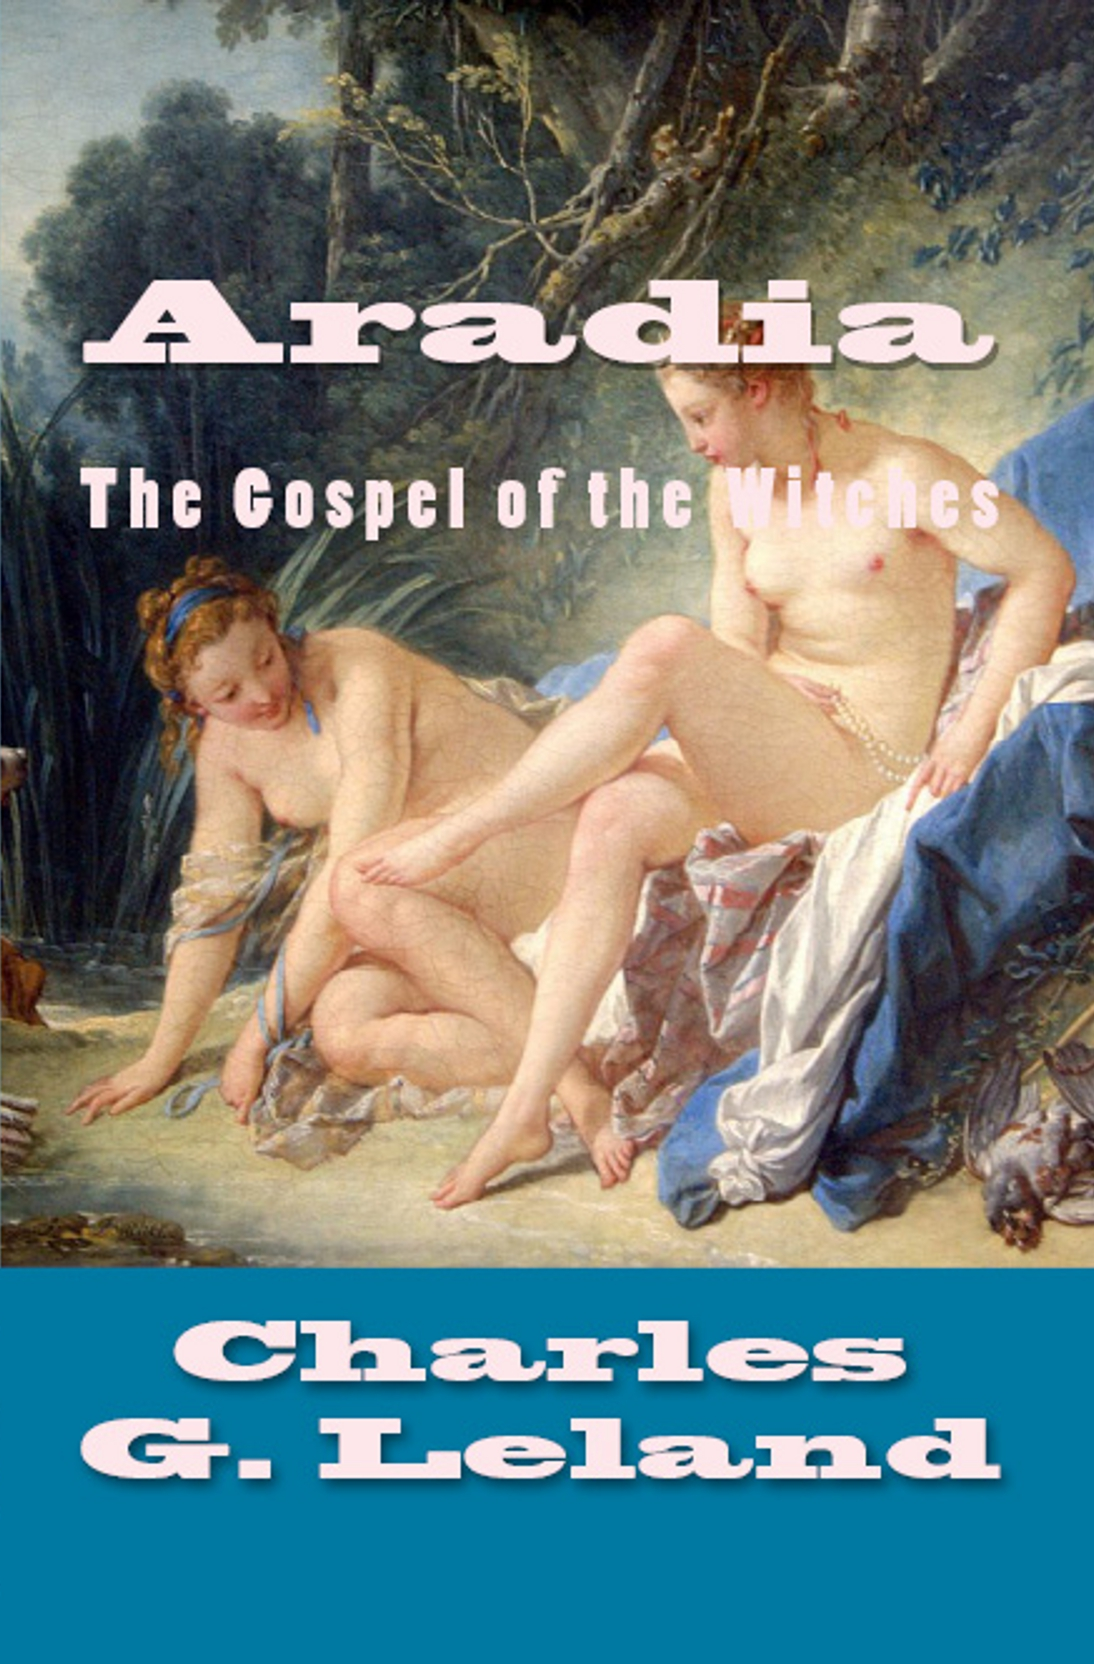 Aradia: The Gospel of Witches